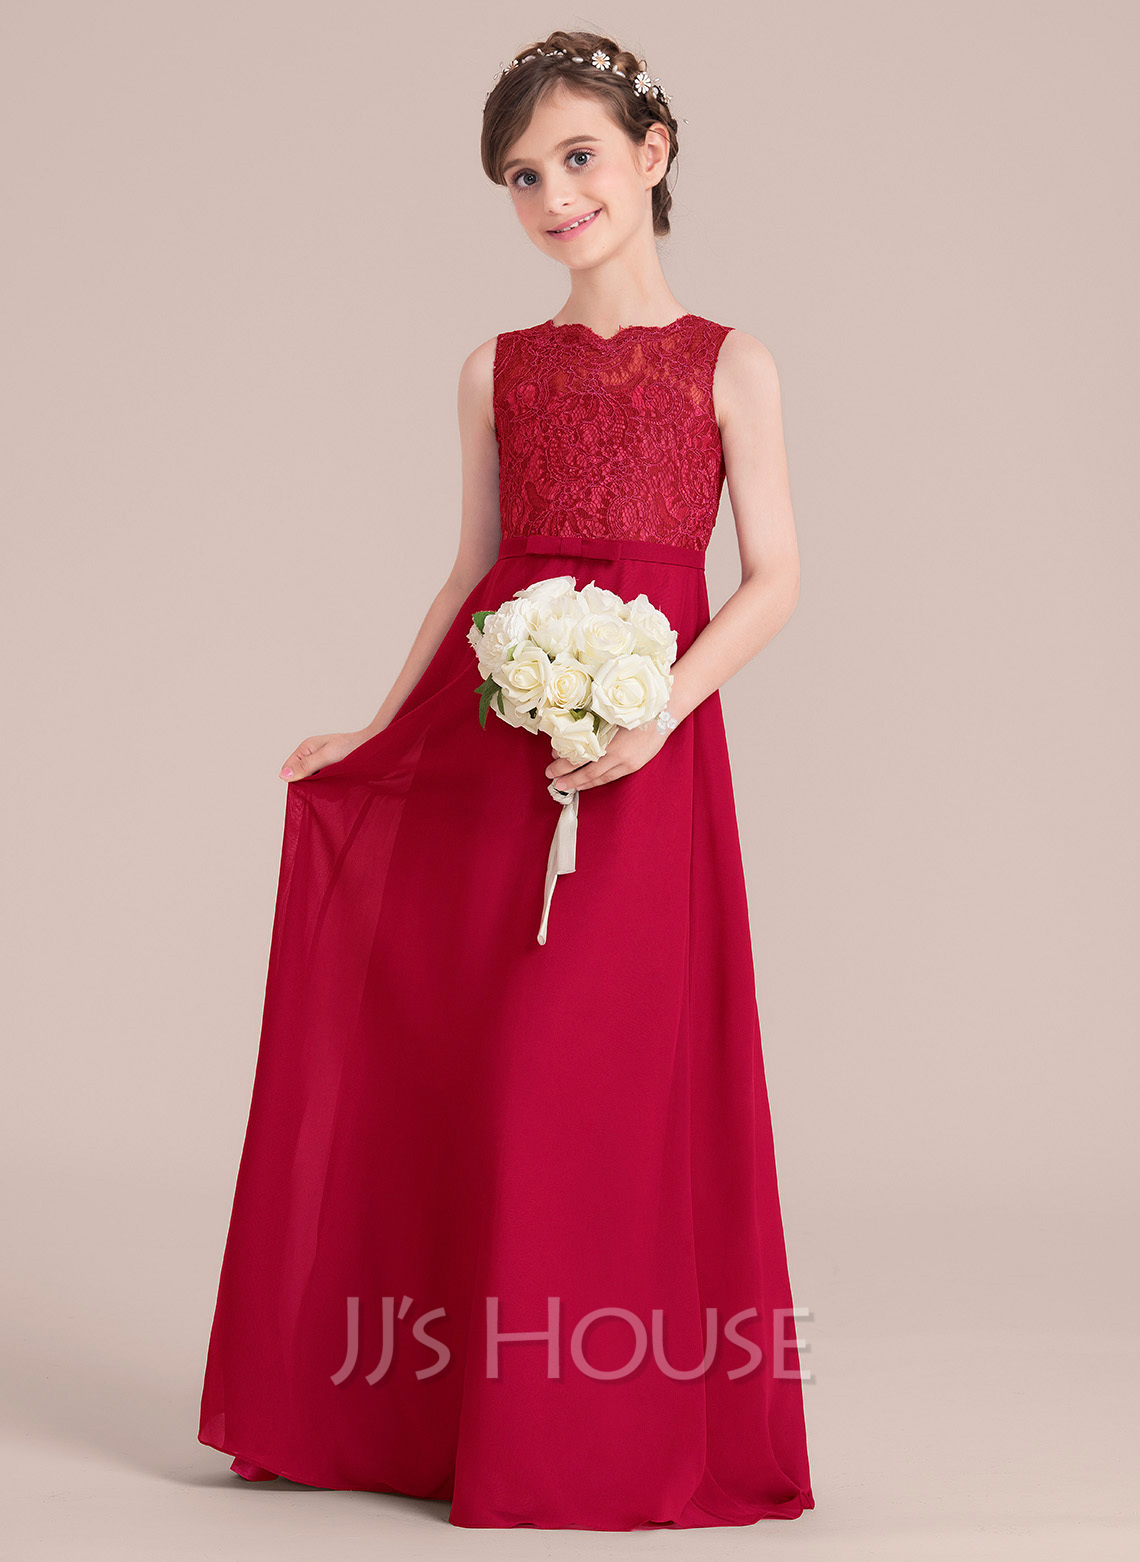 145d0ac7a8e A-Line Princess Scoop Neck Floor-Length Chiffon Junior Bridesmaid Dress  With Bow. Loading zoom